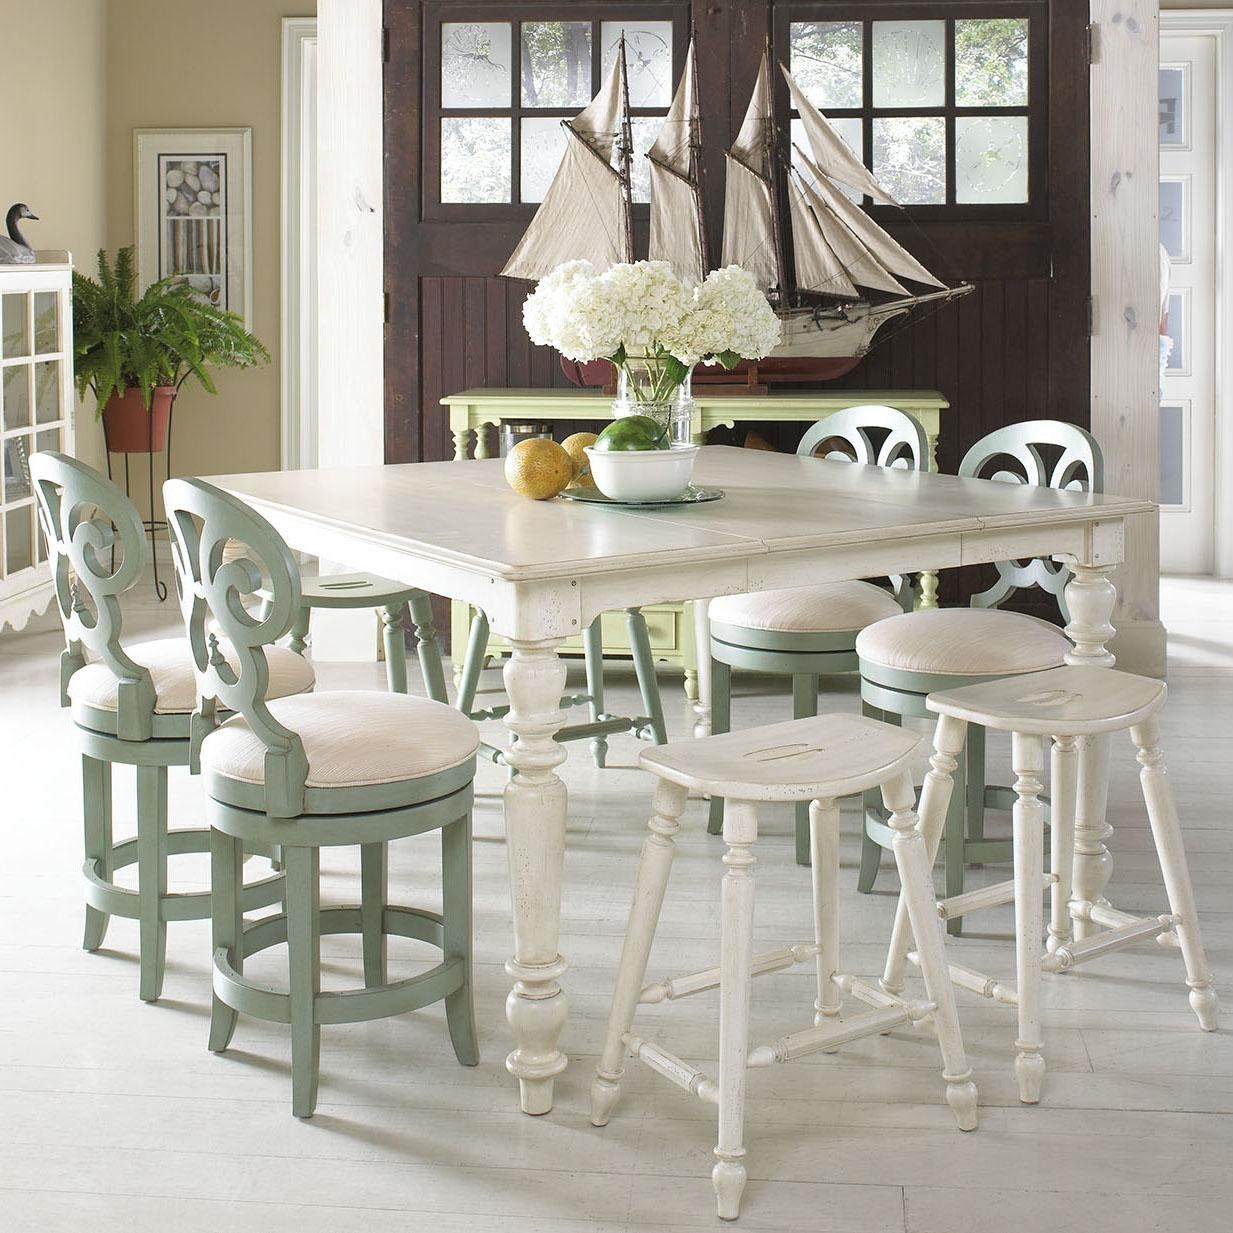 ... Fine Furniture Design Summer HomeHigh Low Dining Table